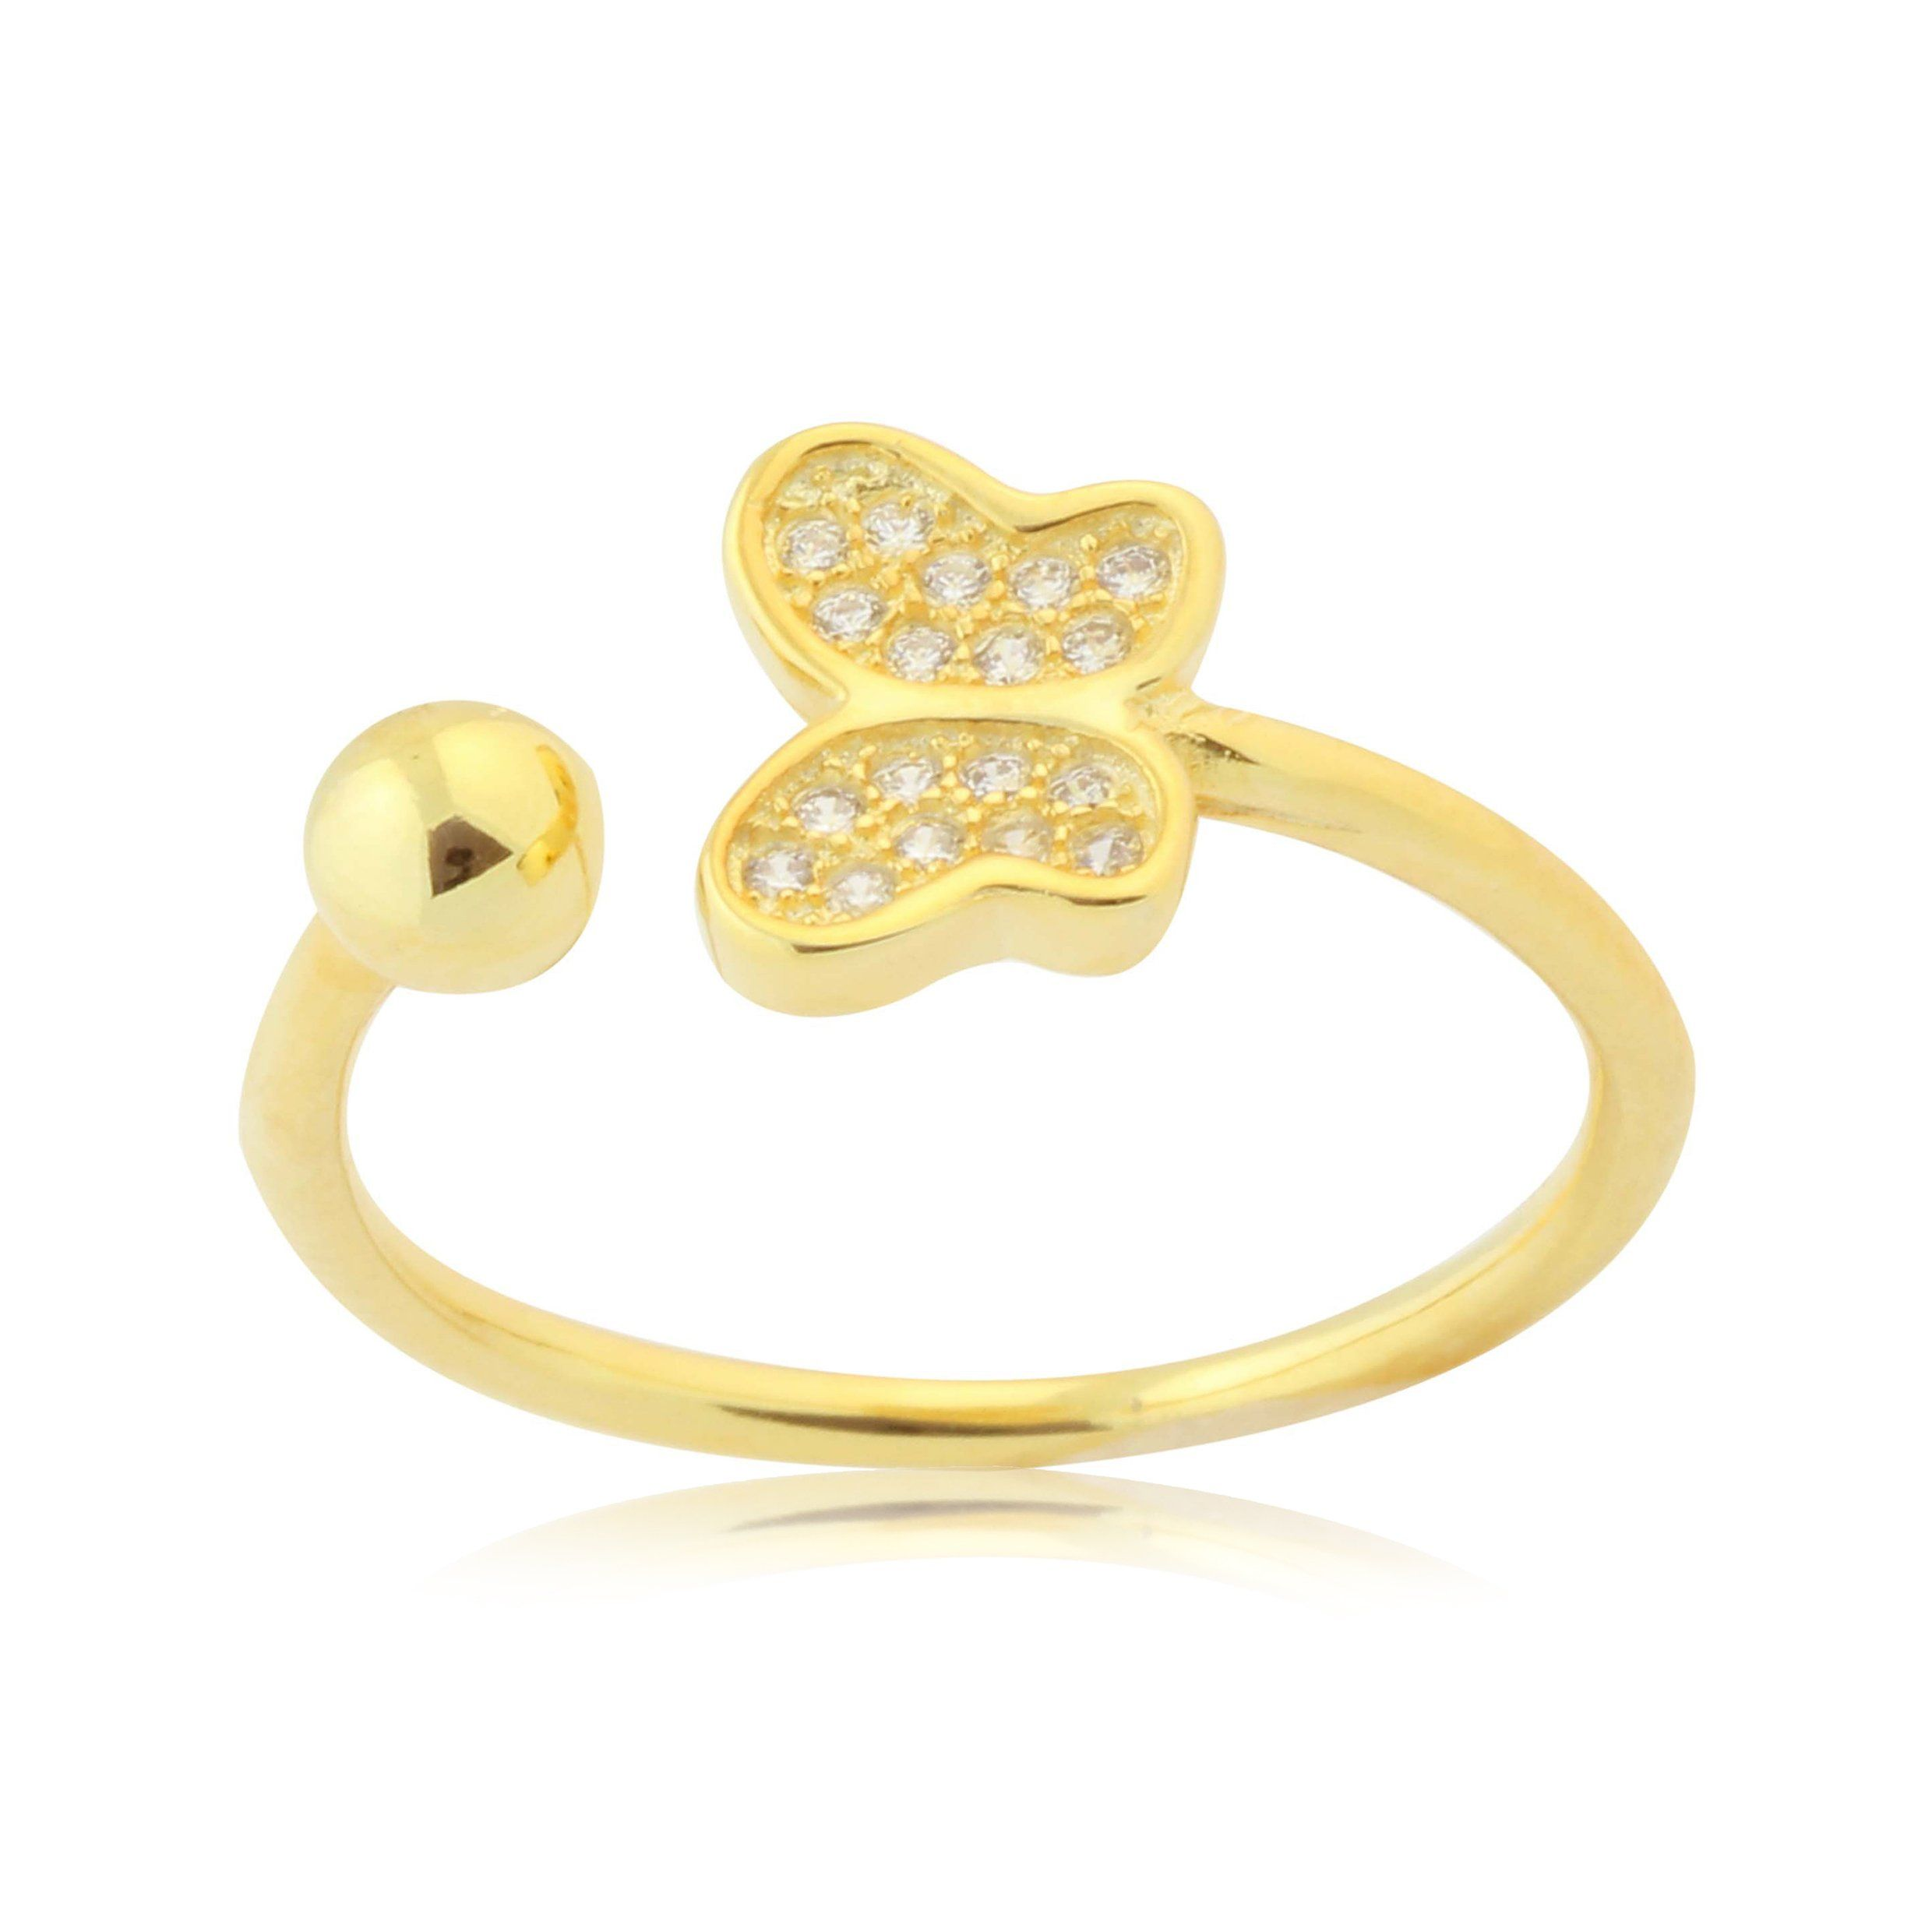 Adjustable Butterfly Ring in Gold Plated Sterling Silver Pavé with